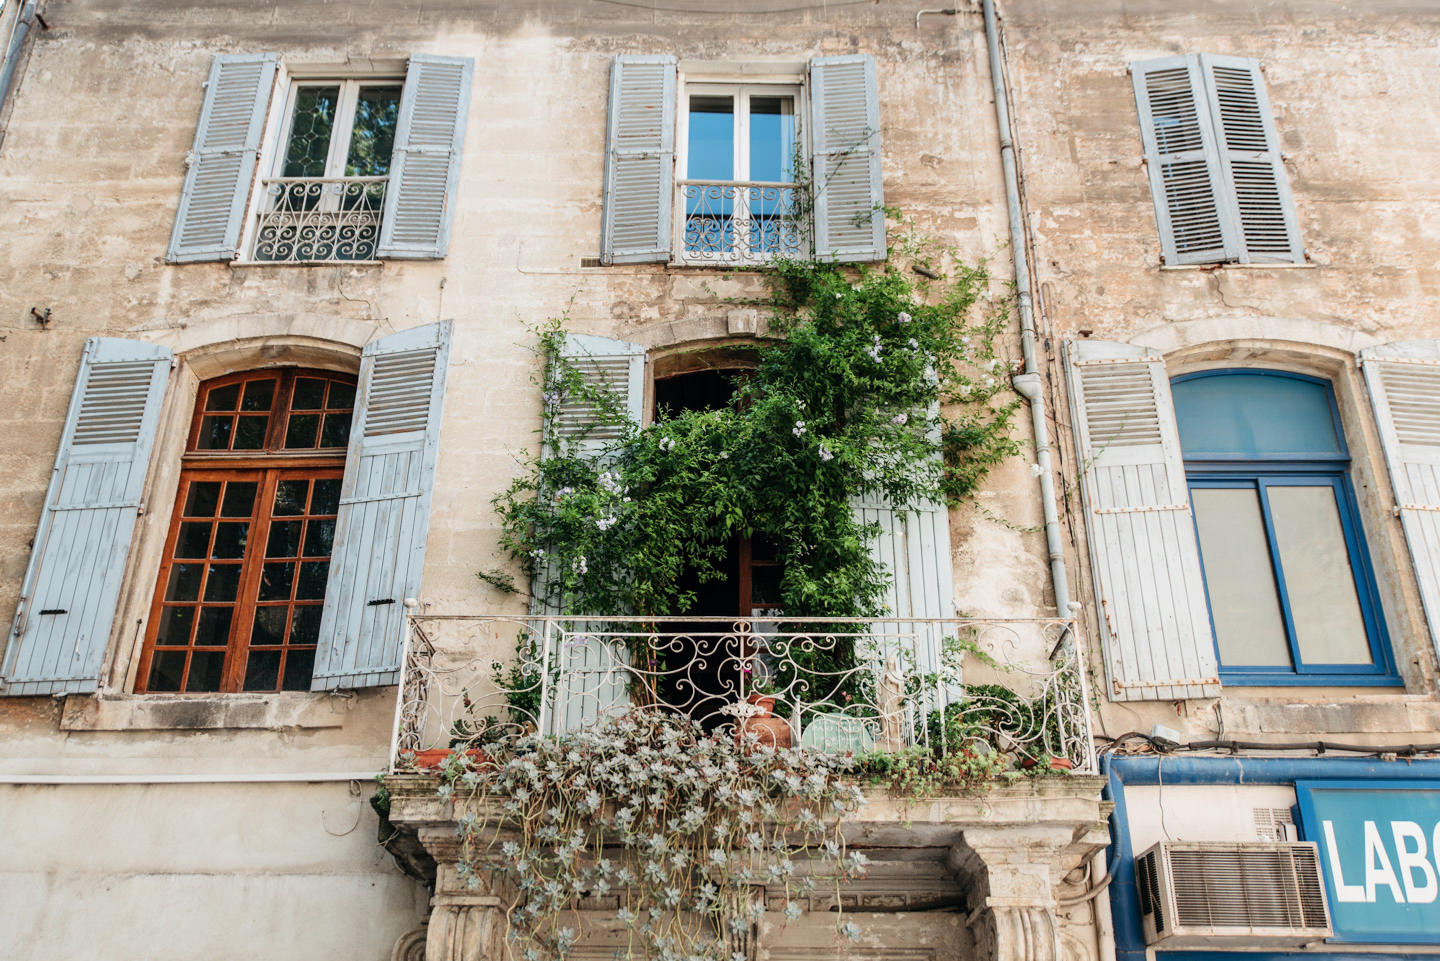 Blog-Mode-And-The-City-Lifestyle-Voyage-Avignon-Mas-Des-Herbes-Blanches-10